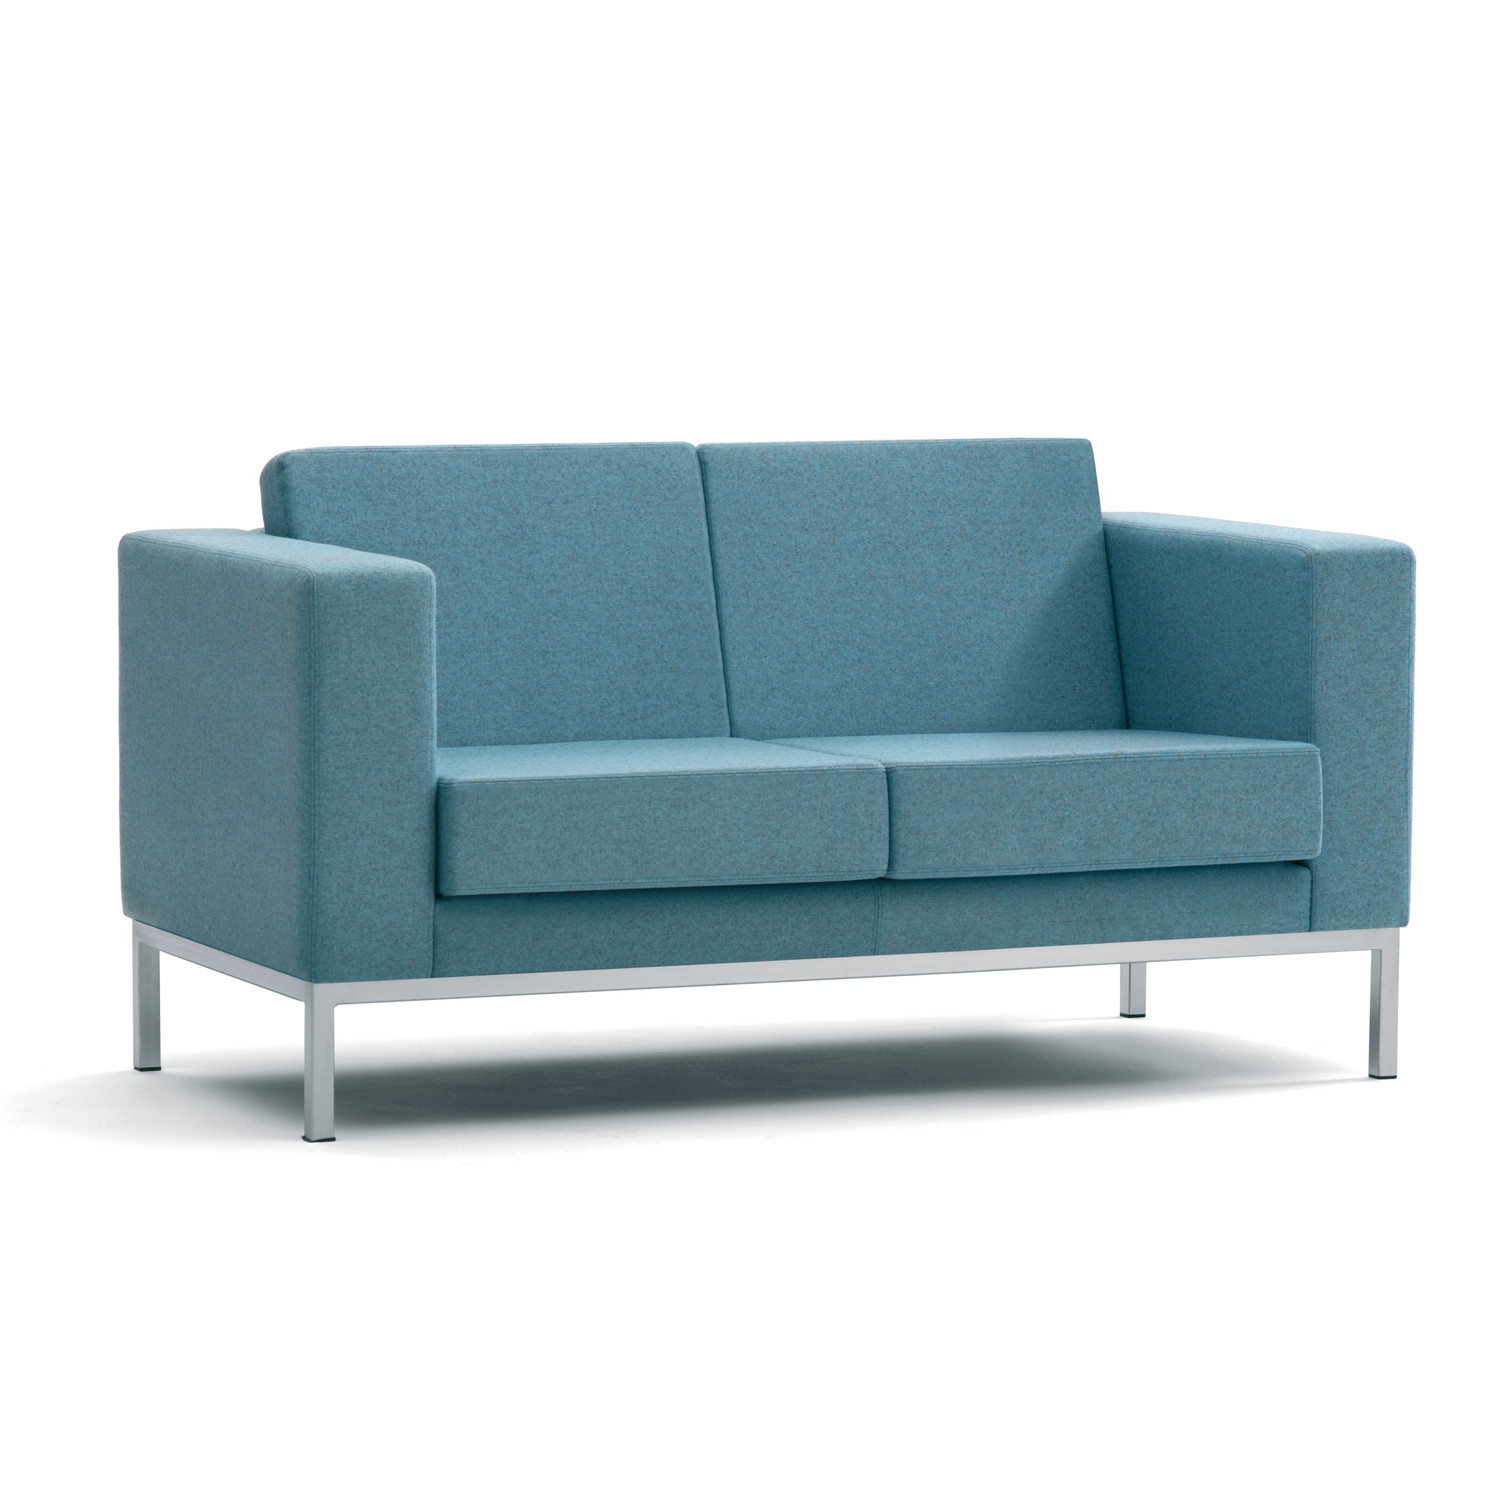 Total Office Sofa